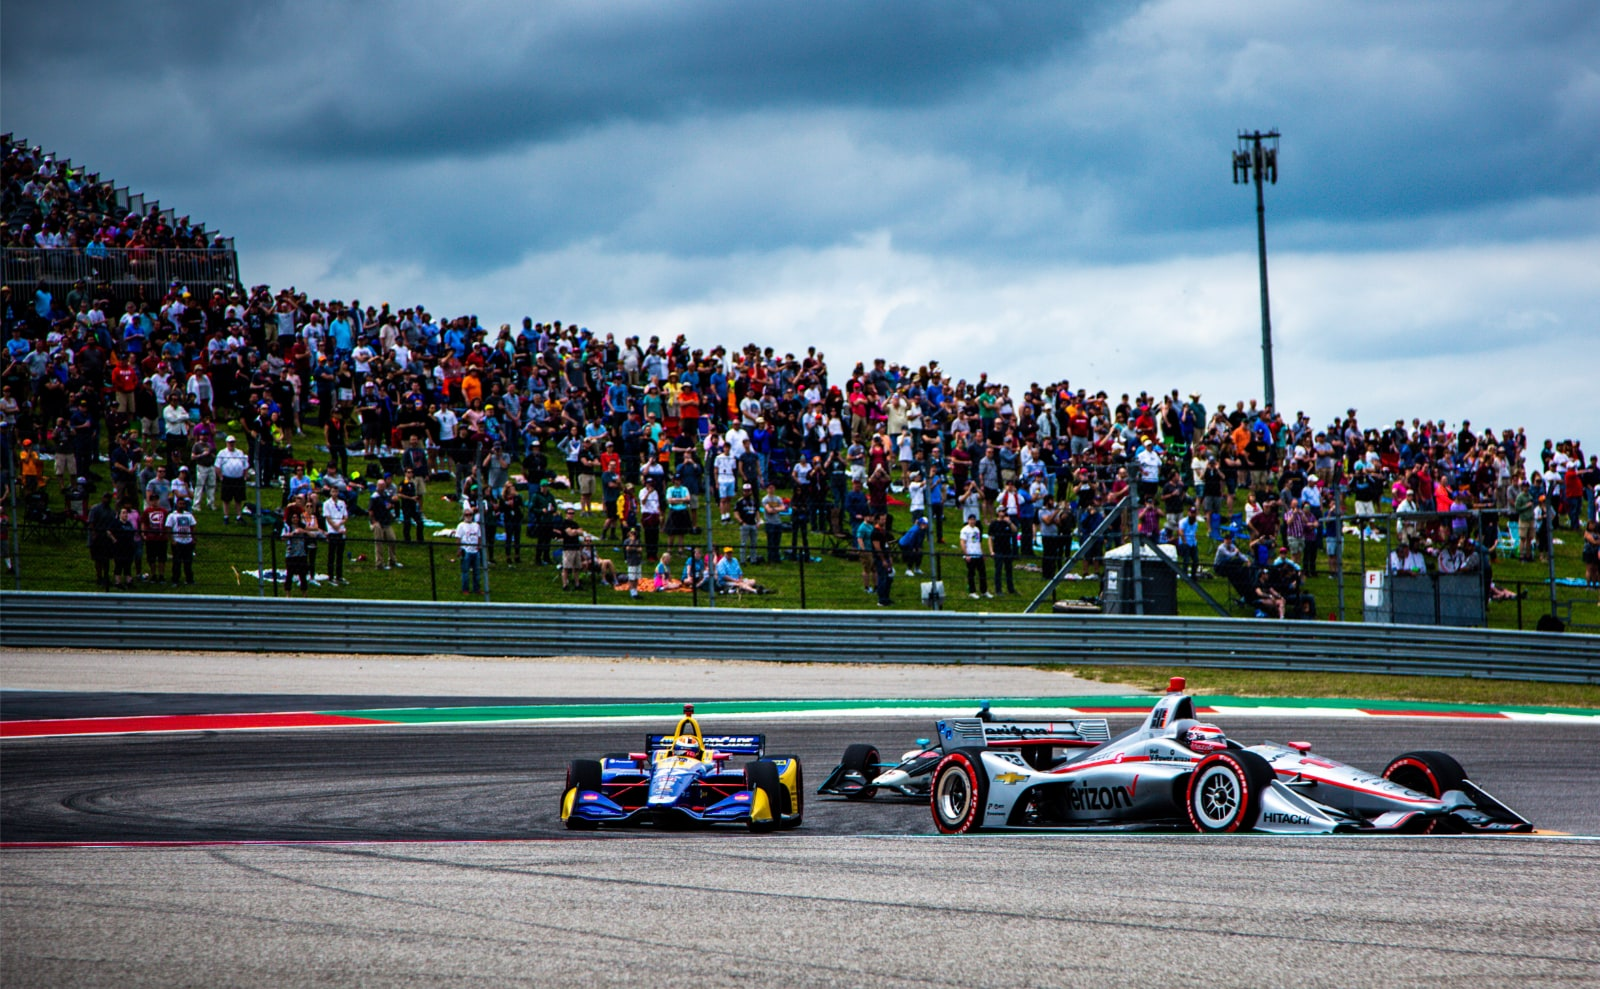 Will Power chased by Alexander Rossi and Colton Herta in COTA IndyCar race